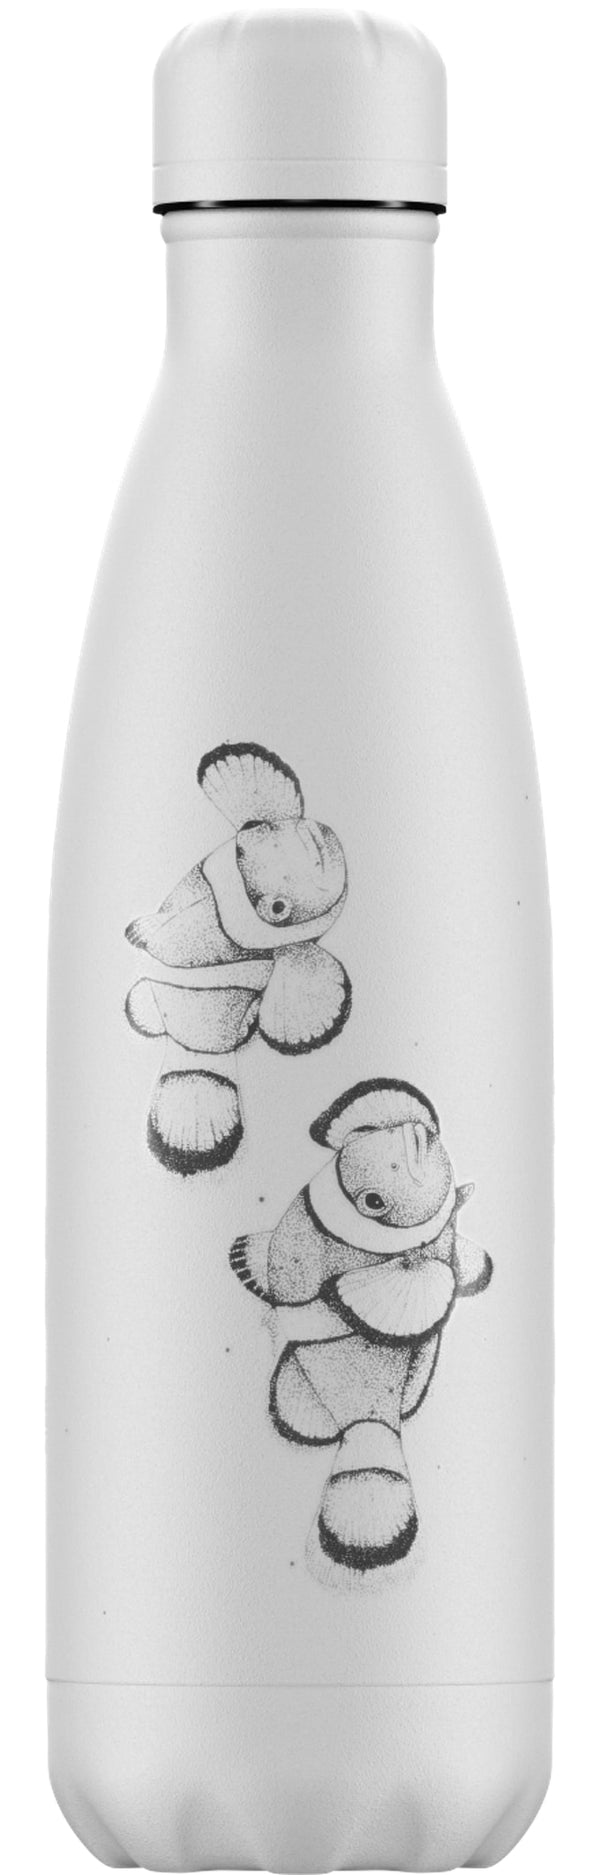 Double-Walled Stainless Steel Bottle 500ml - Sealife